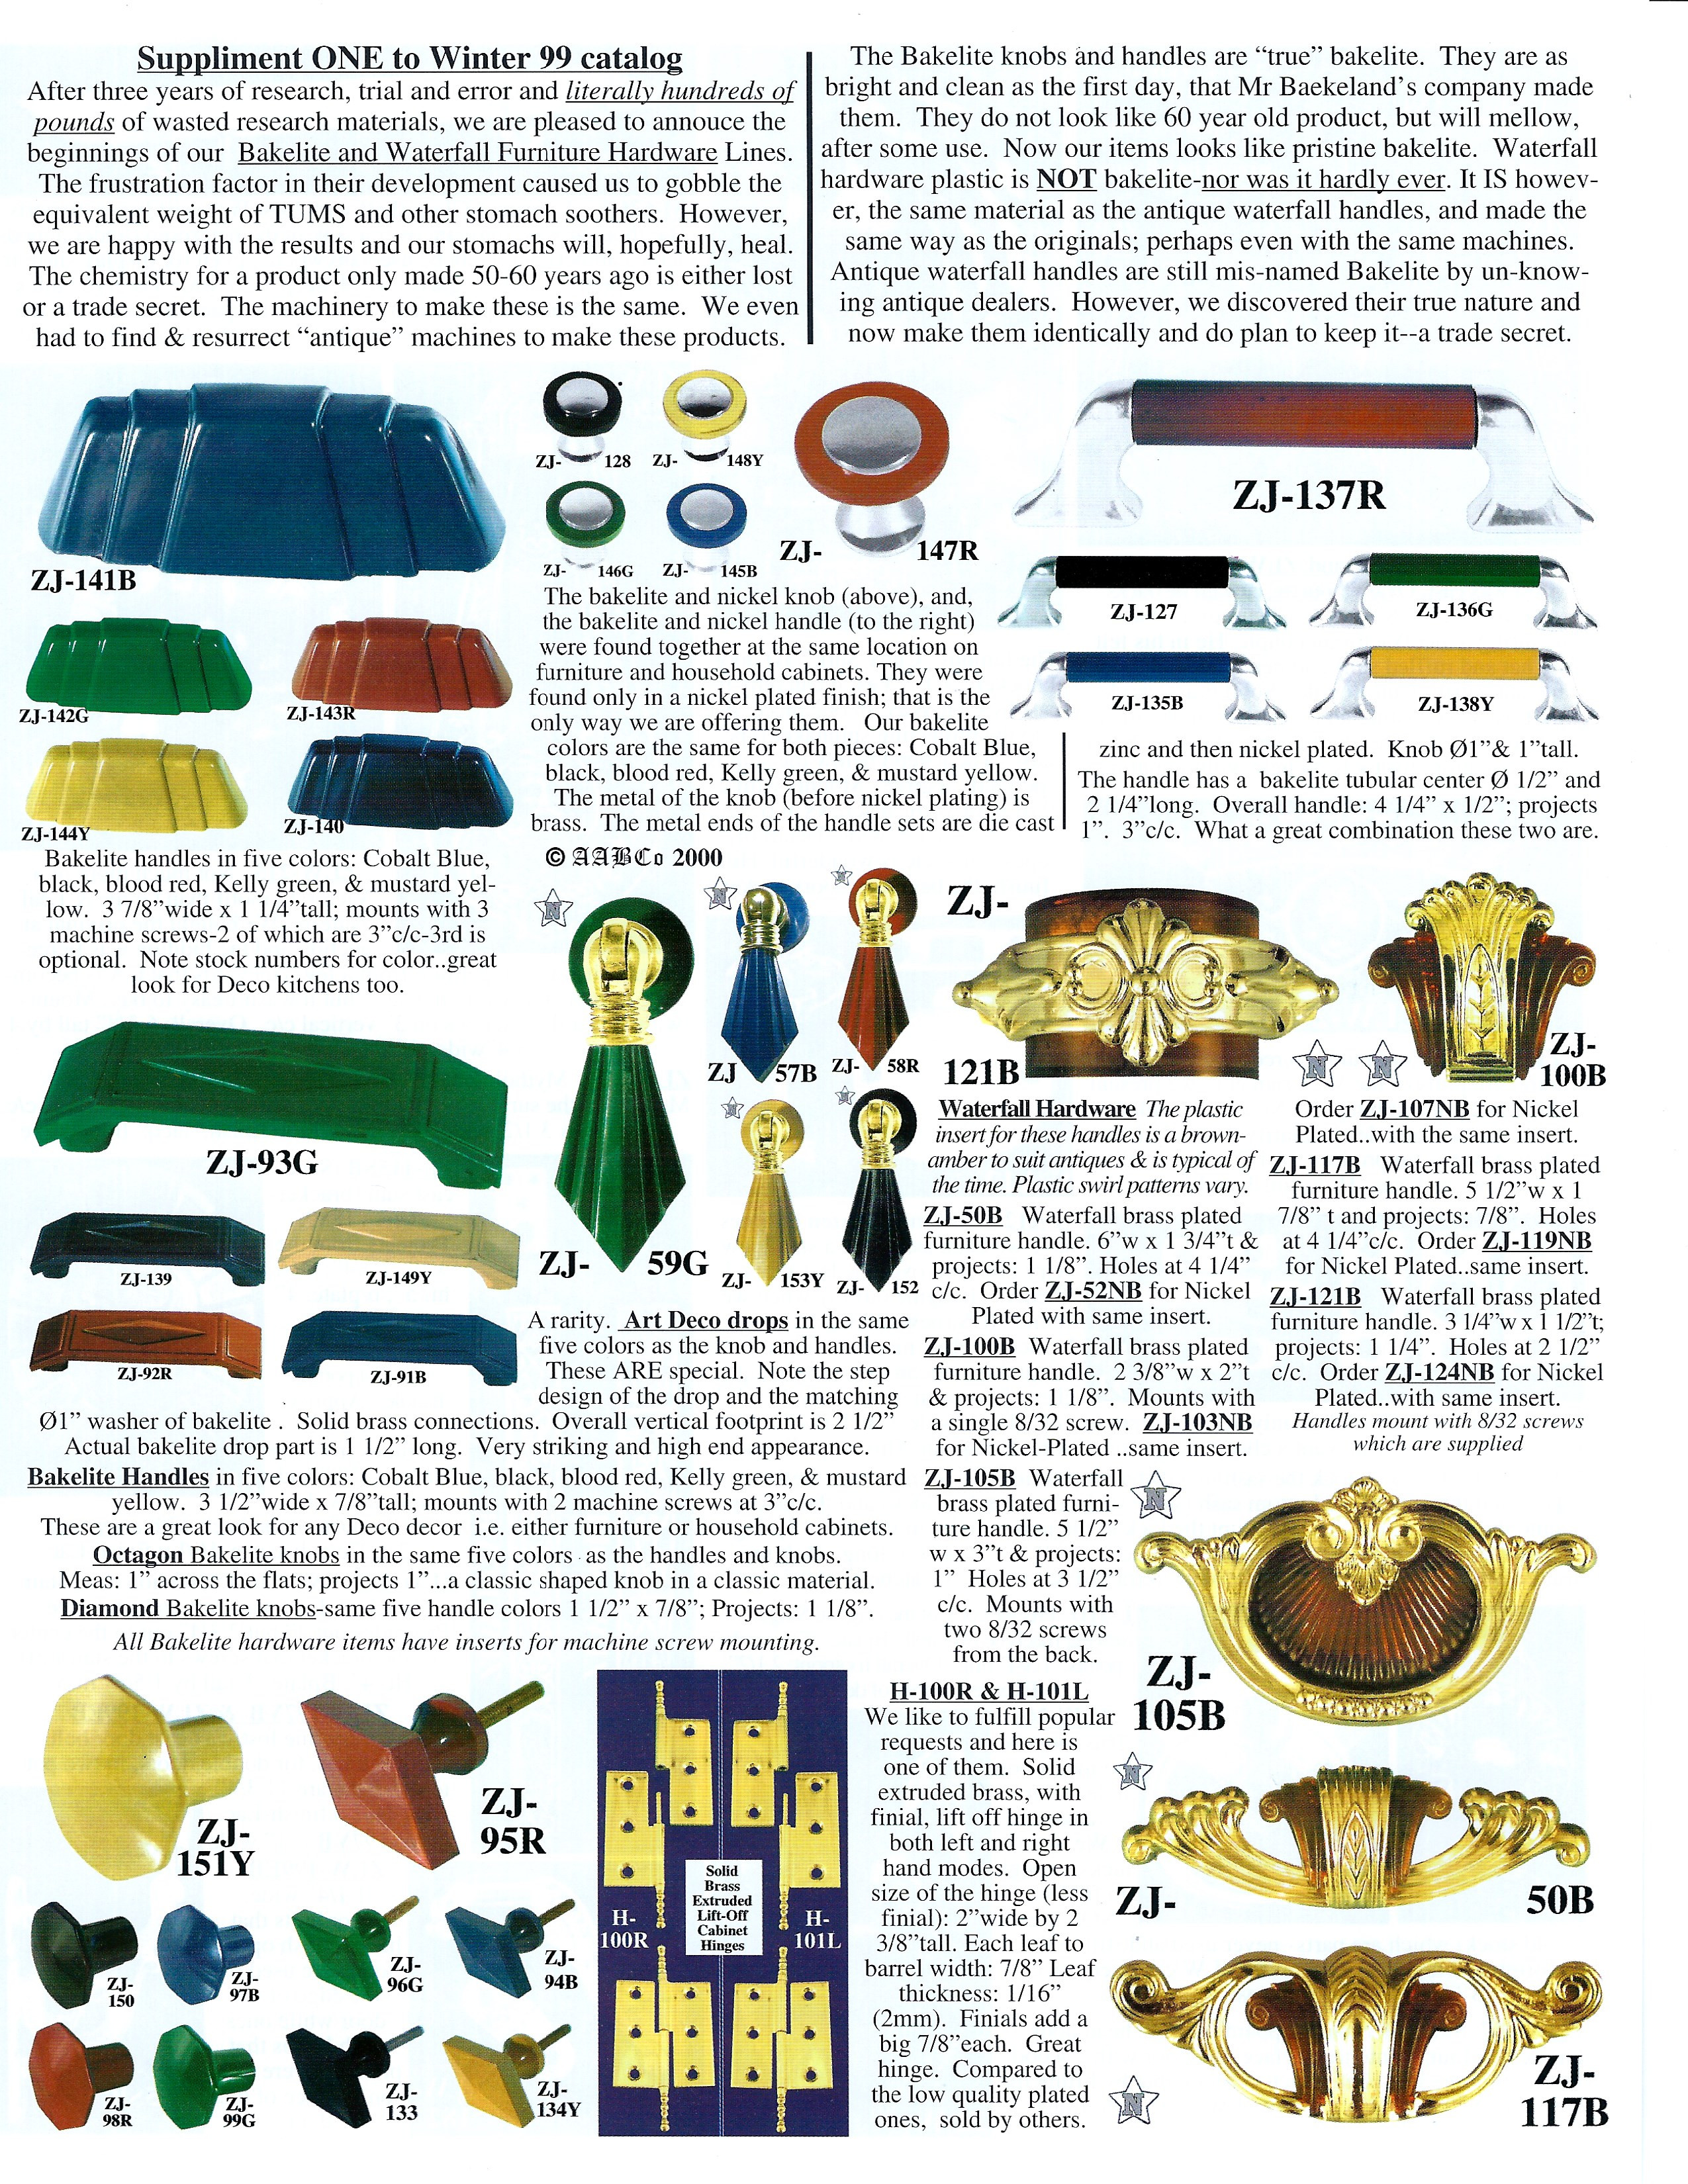 Catalog page 41